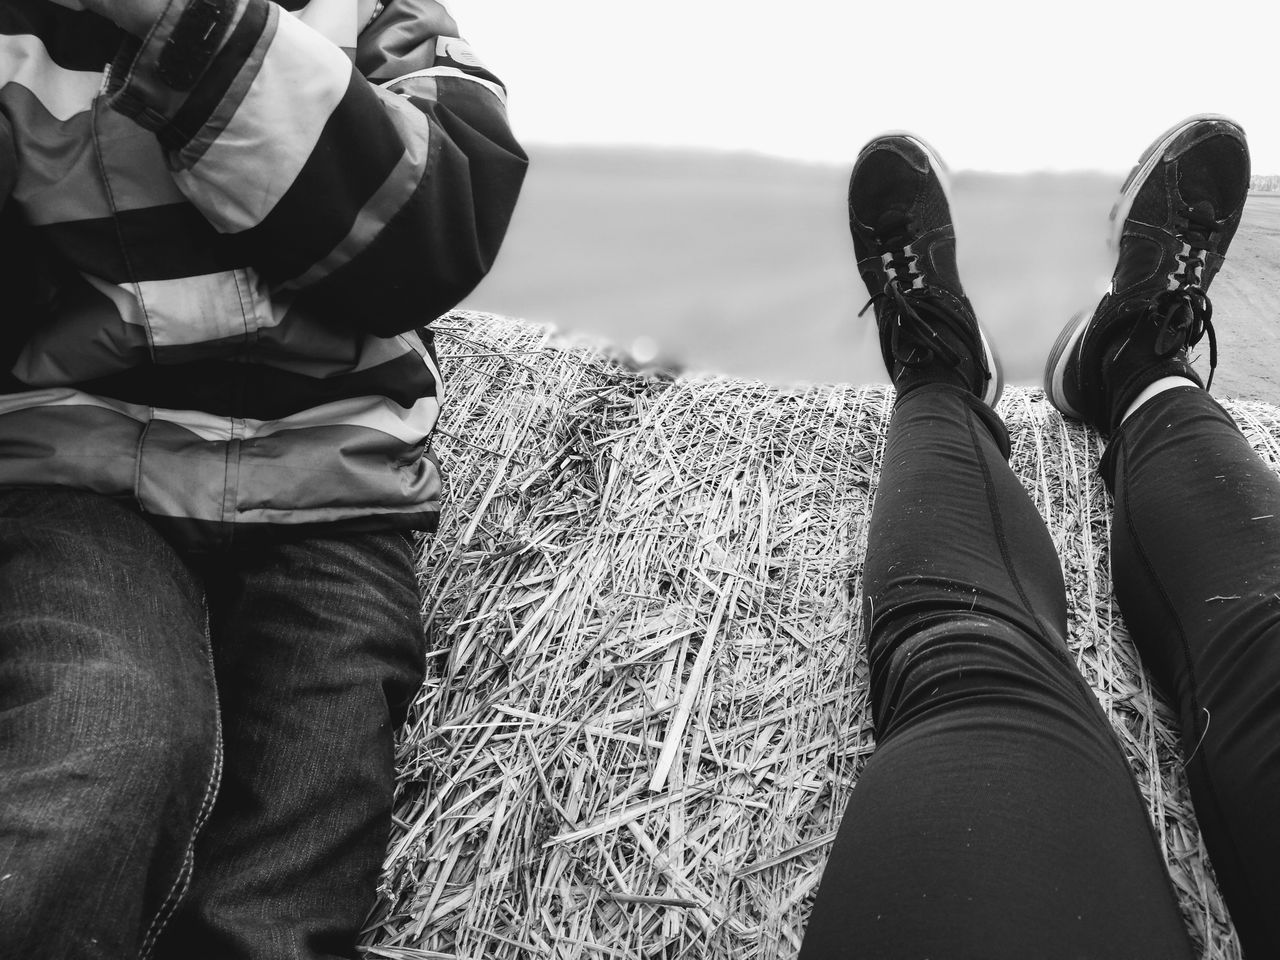 Having a rest in black & white. Straw Bale Special Moment Family Time Childhood Memories Nature Day Outdoors Landscape Beauty In Nature People Agriculture Agricultural Land Field Rural Scene Quality Time Togetherness EyeEm Diversity The Secret Spaces Having A Rest Having A Good Time Cropped Body My Unique Style Natures Diversities Human Body Part Art Is Everywhere TCPM The Great Outdoors - 2017 EyeEm Awards BYOPaper! Live For The Story